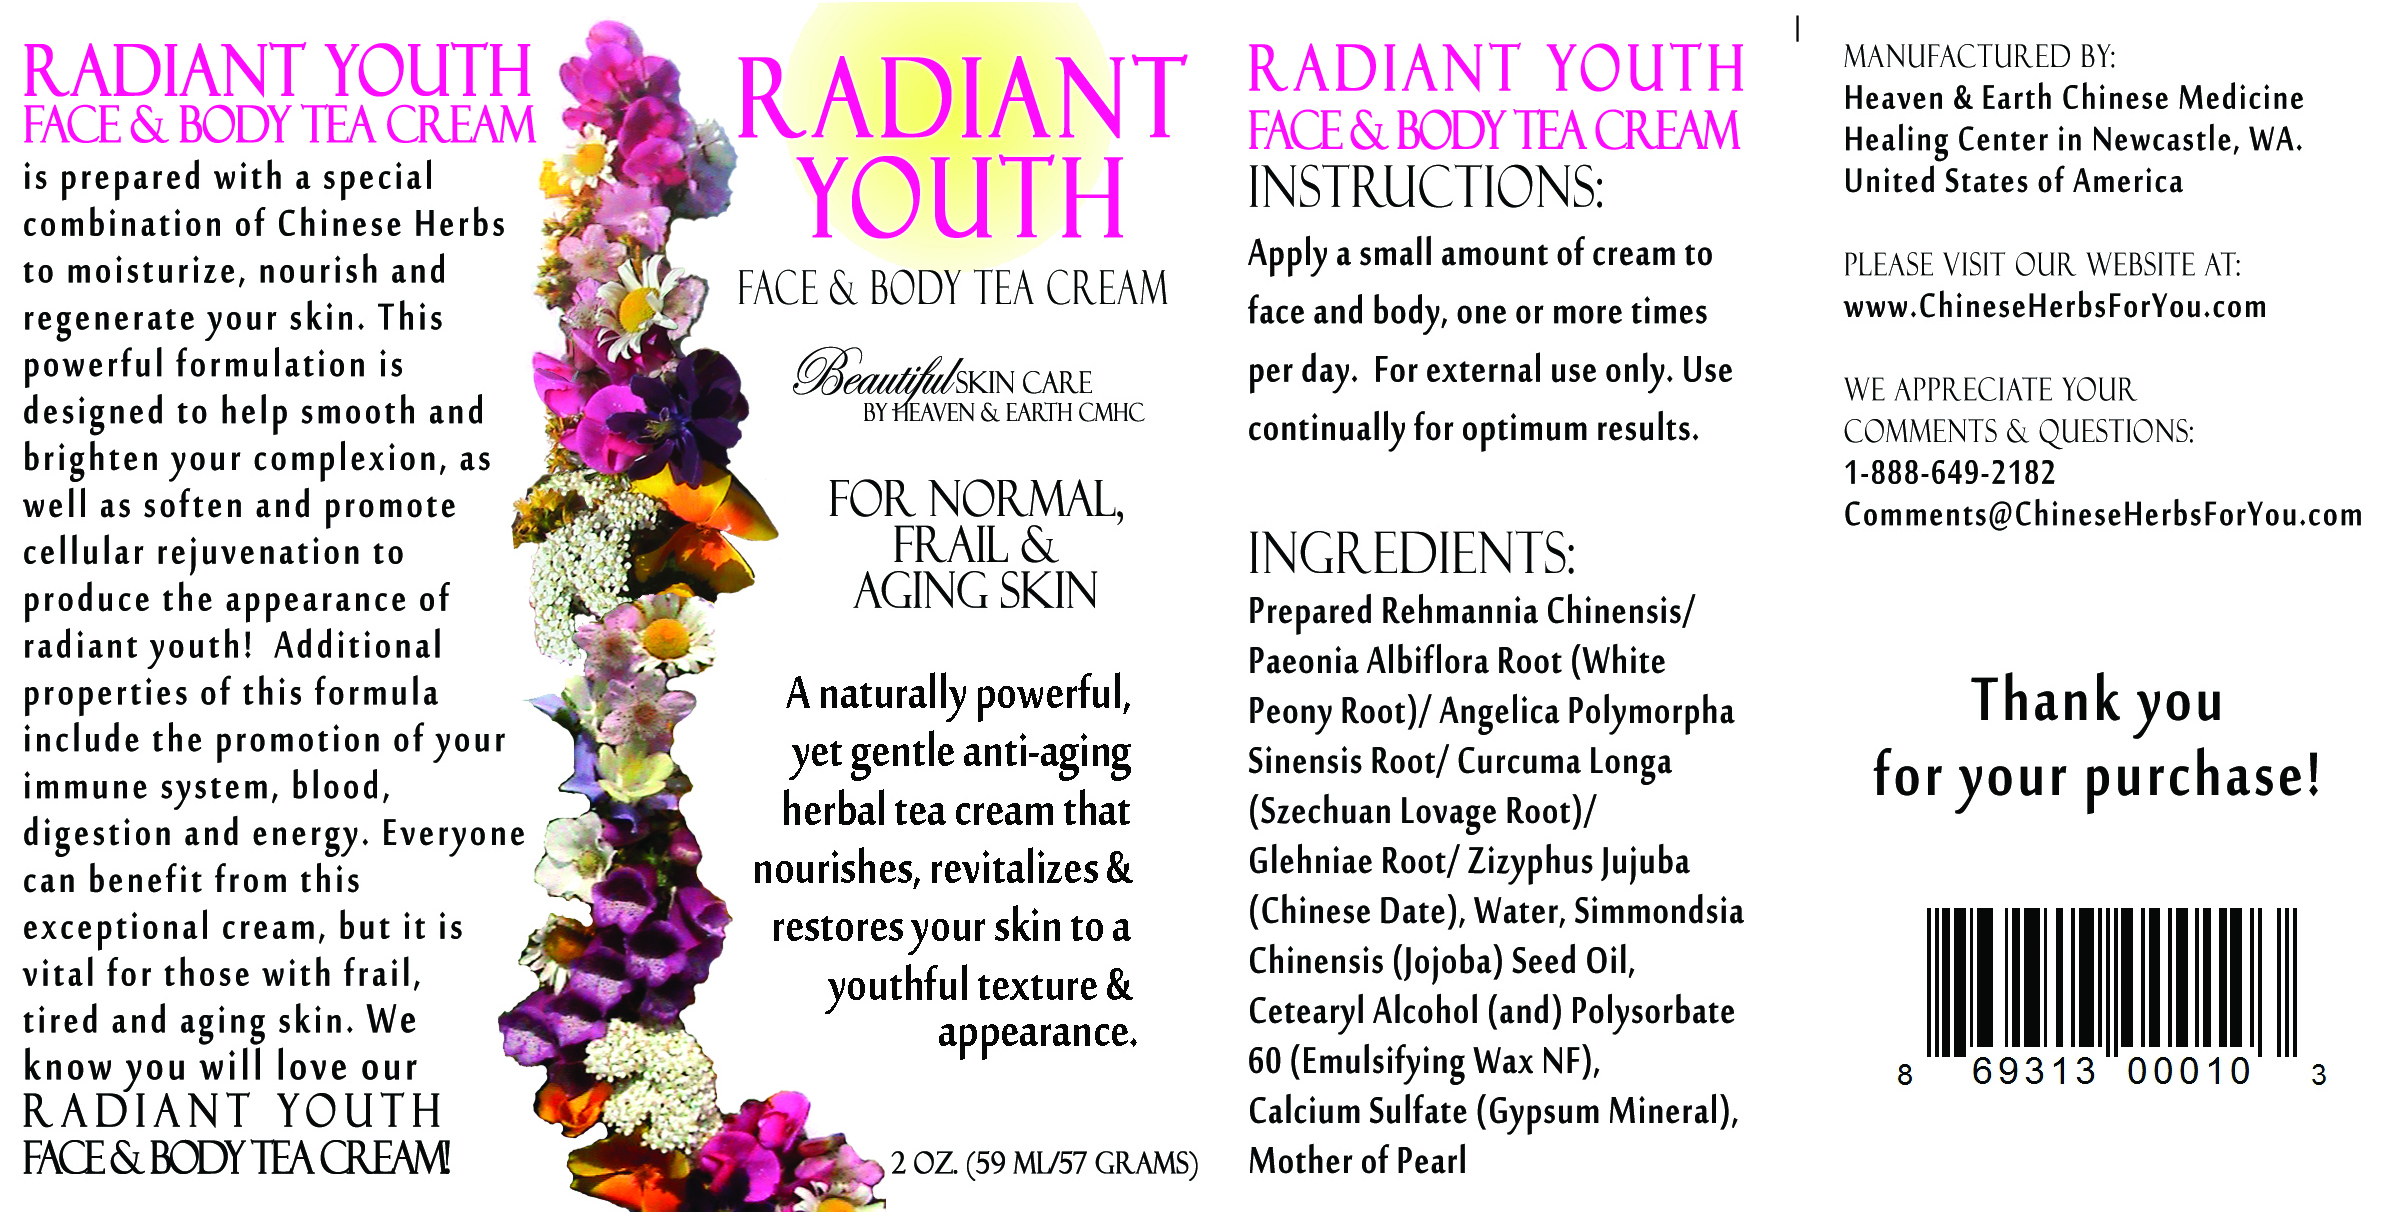 Radiant Youth Face & Body Herbal Tea Cream - Full Label